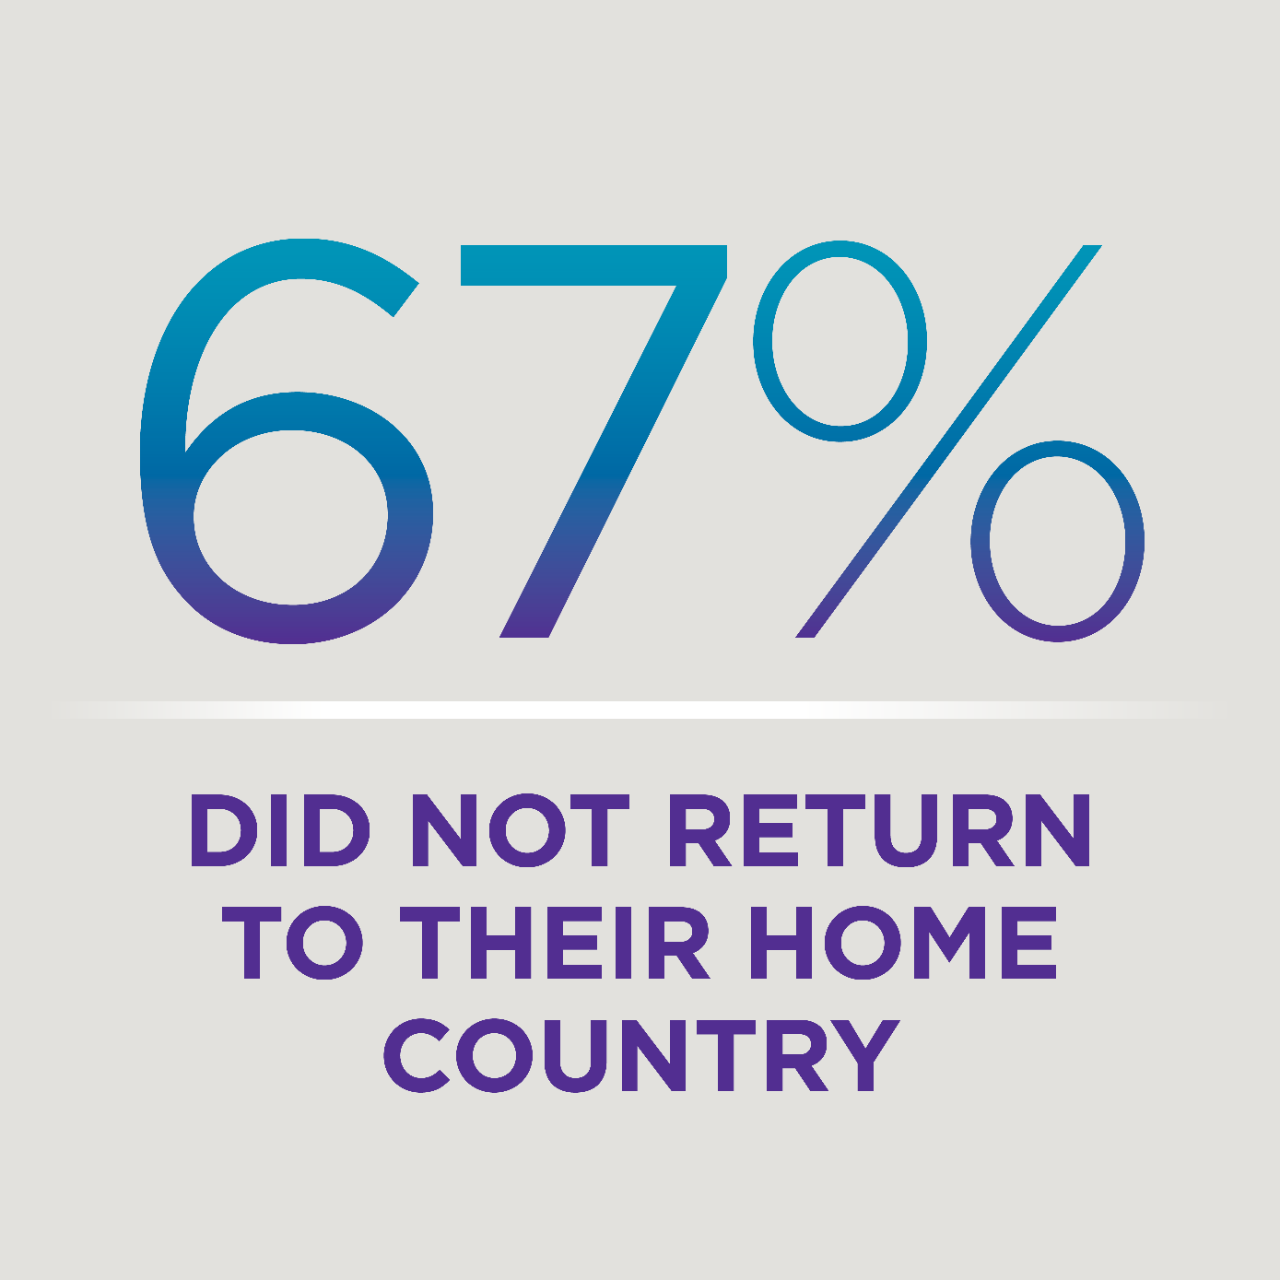 67% do not return to their home country.